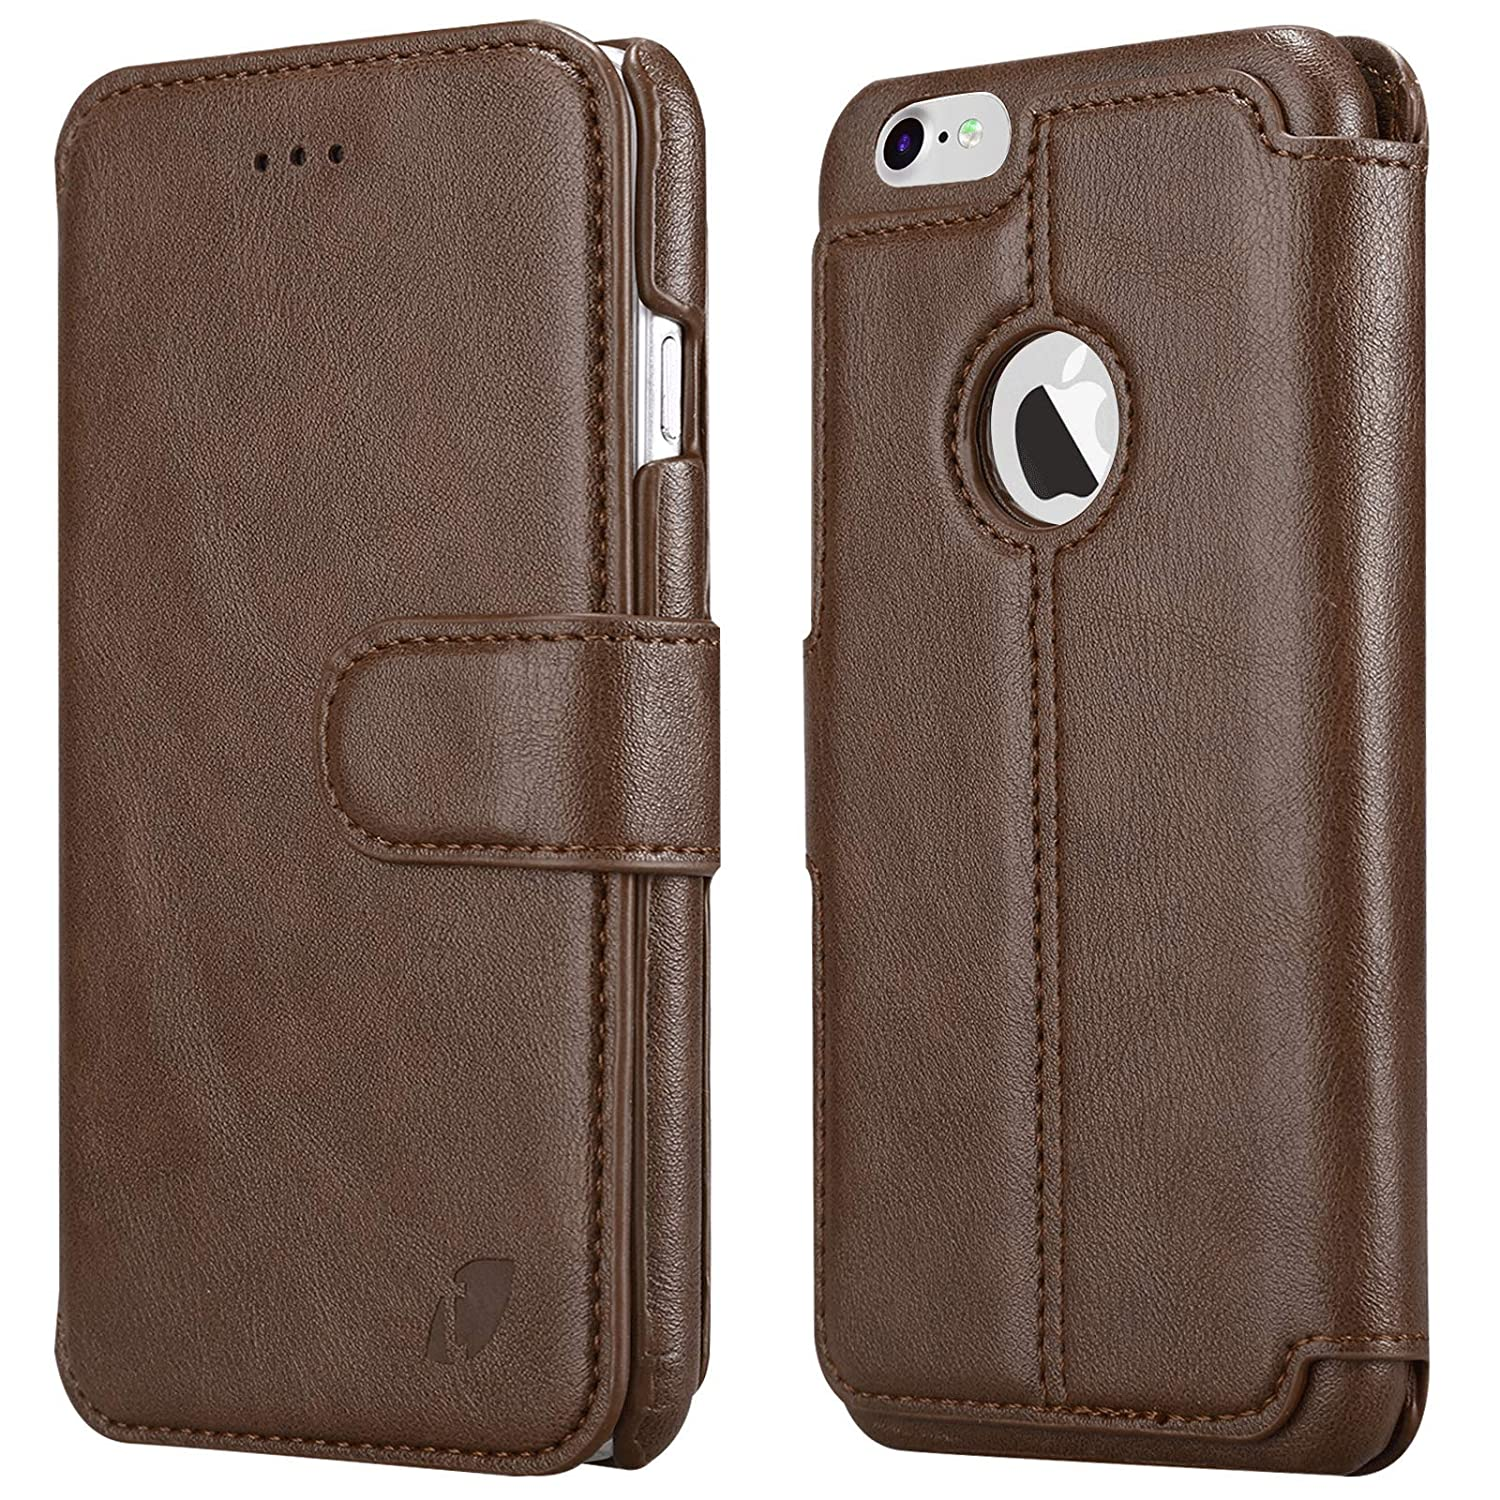 san francisco 7d1f9 ed862 Techstudio Leather Flip Cover Case for Apple iPhone 7 iPhone 8 Extreme  Series